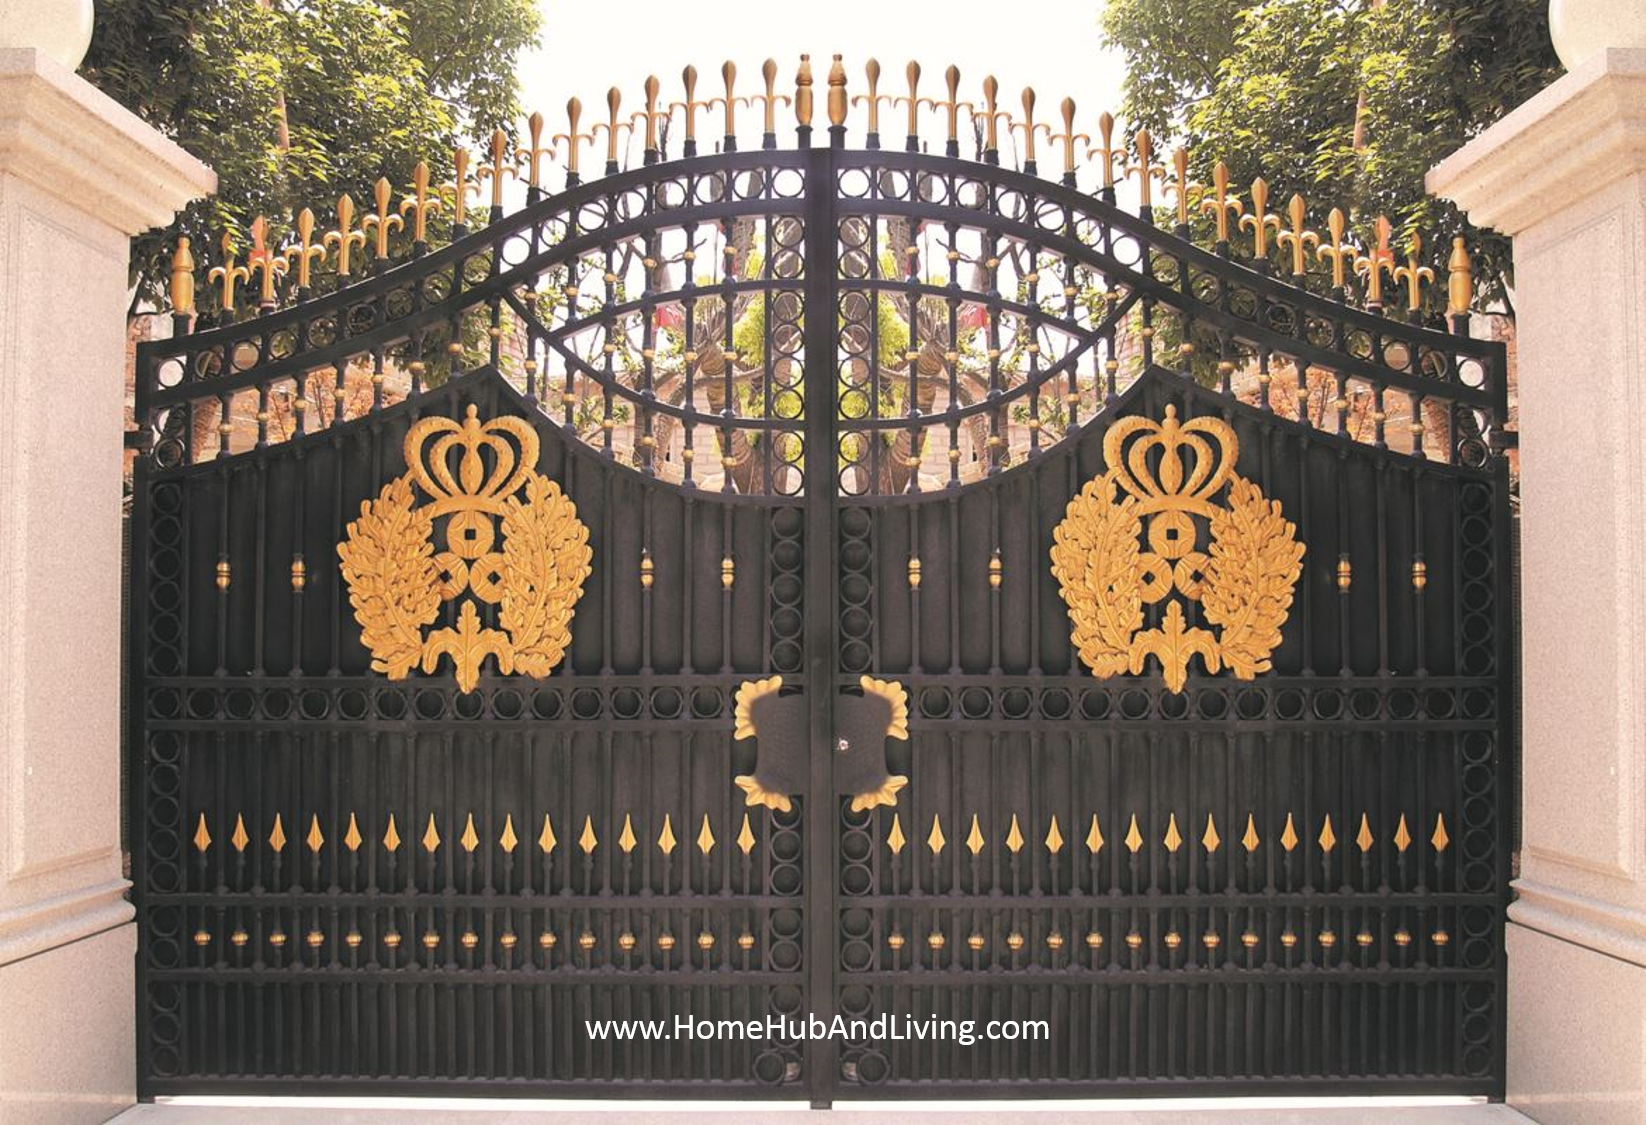 Grand Entrance French design wrought iron Gate FZY TM024  Official Site of Latest Frameless Doors System & Flying Door Designs: Space Design Solutions for protecting Home Balcony, Patio, Room Dividers, Home Office, Office Partition, Co Space Solutions and more!